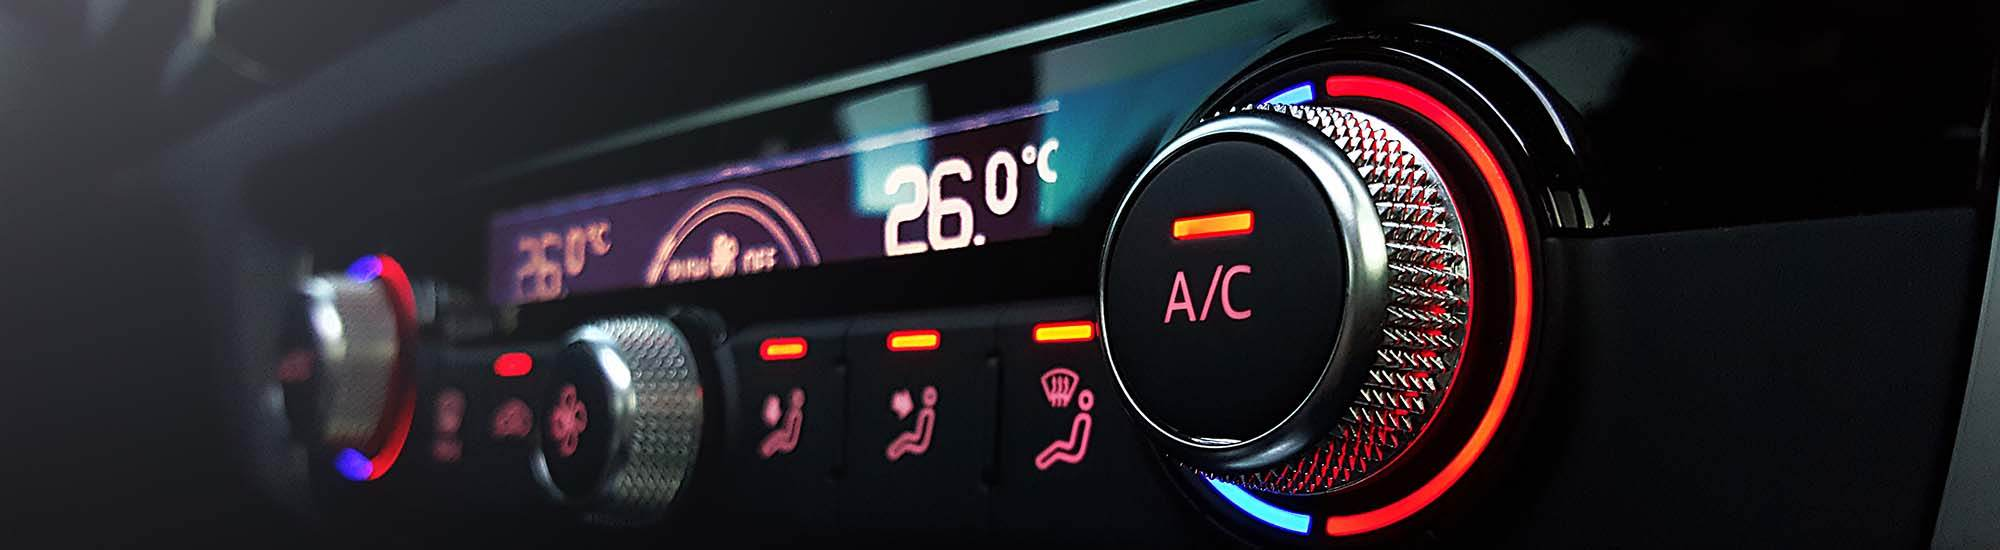 air conditioning unit in a car